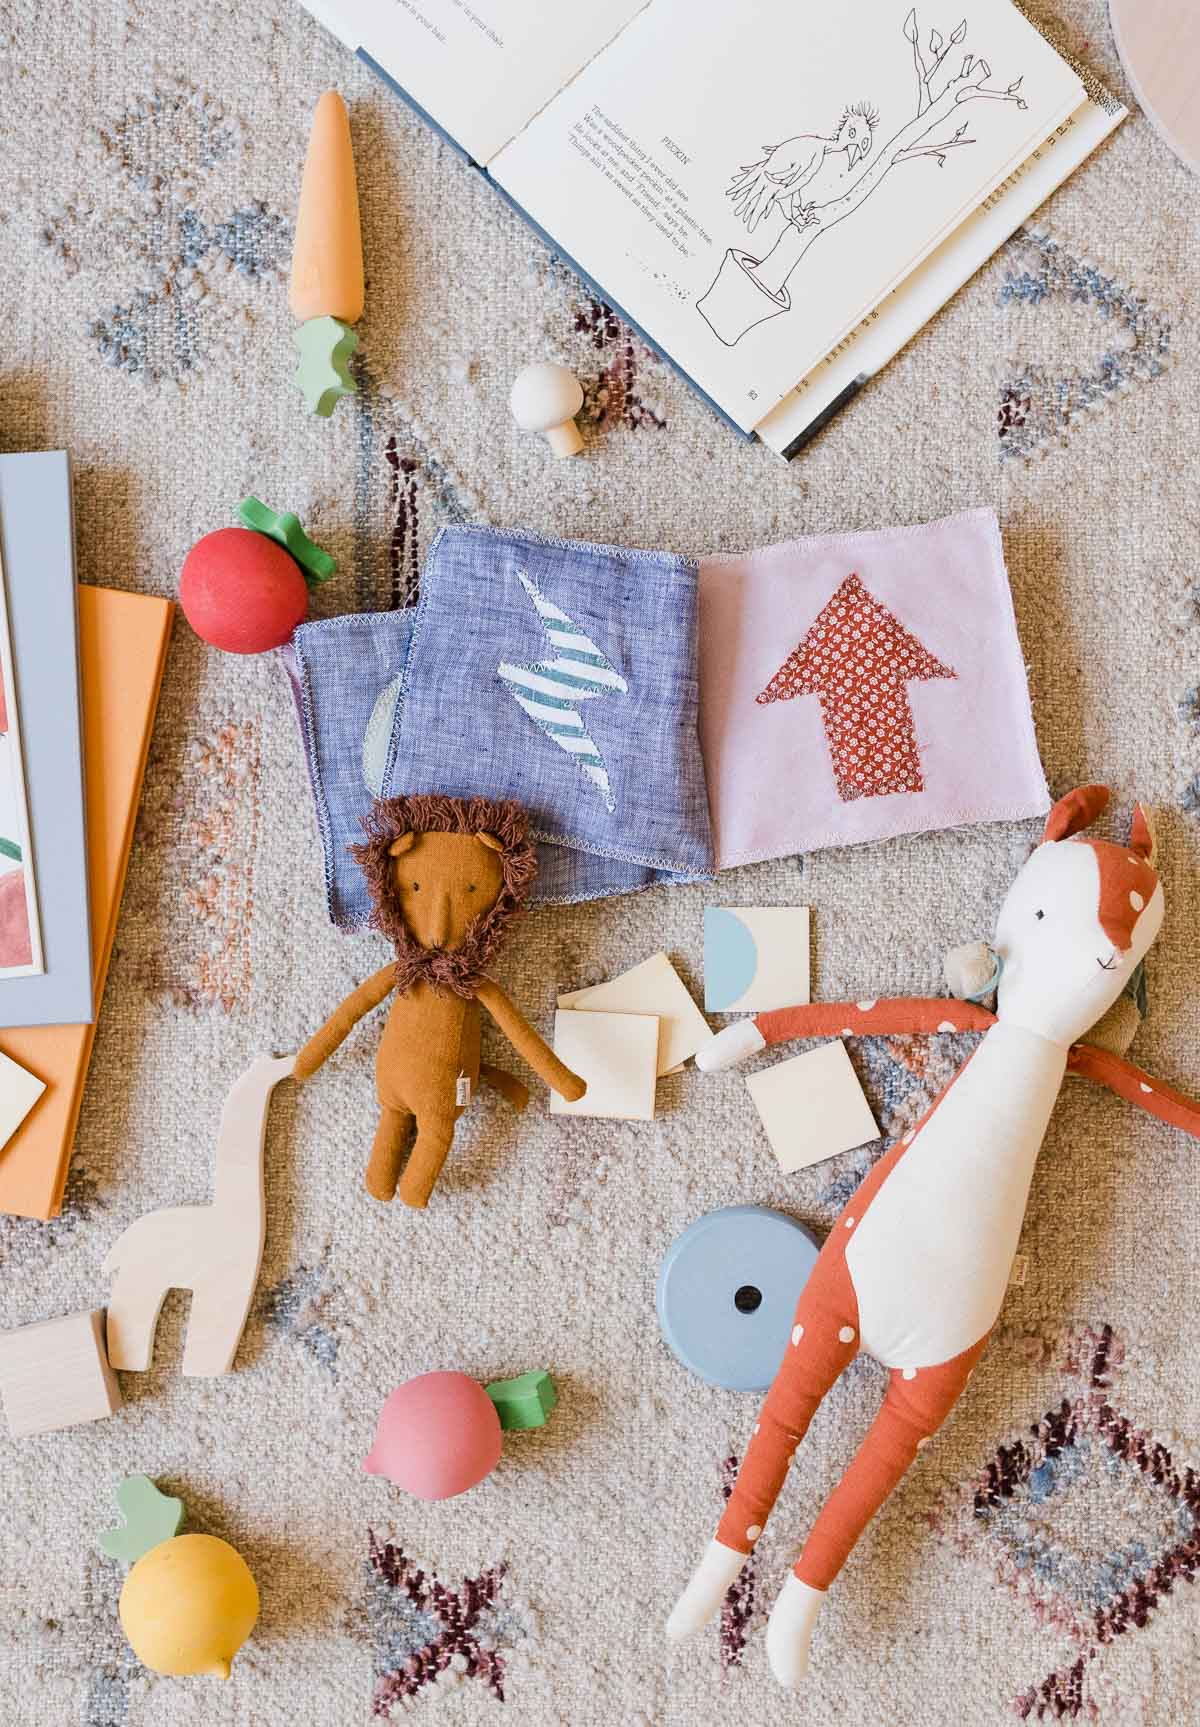 Kids toys and a soft sewn book on the floor